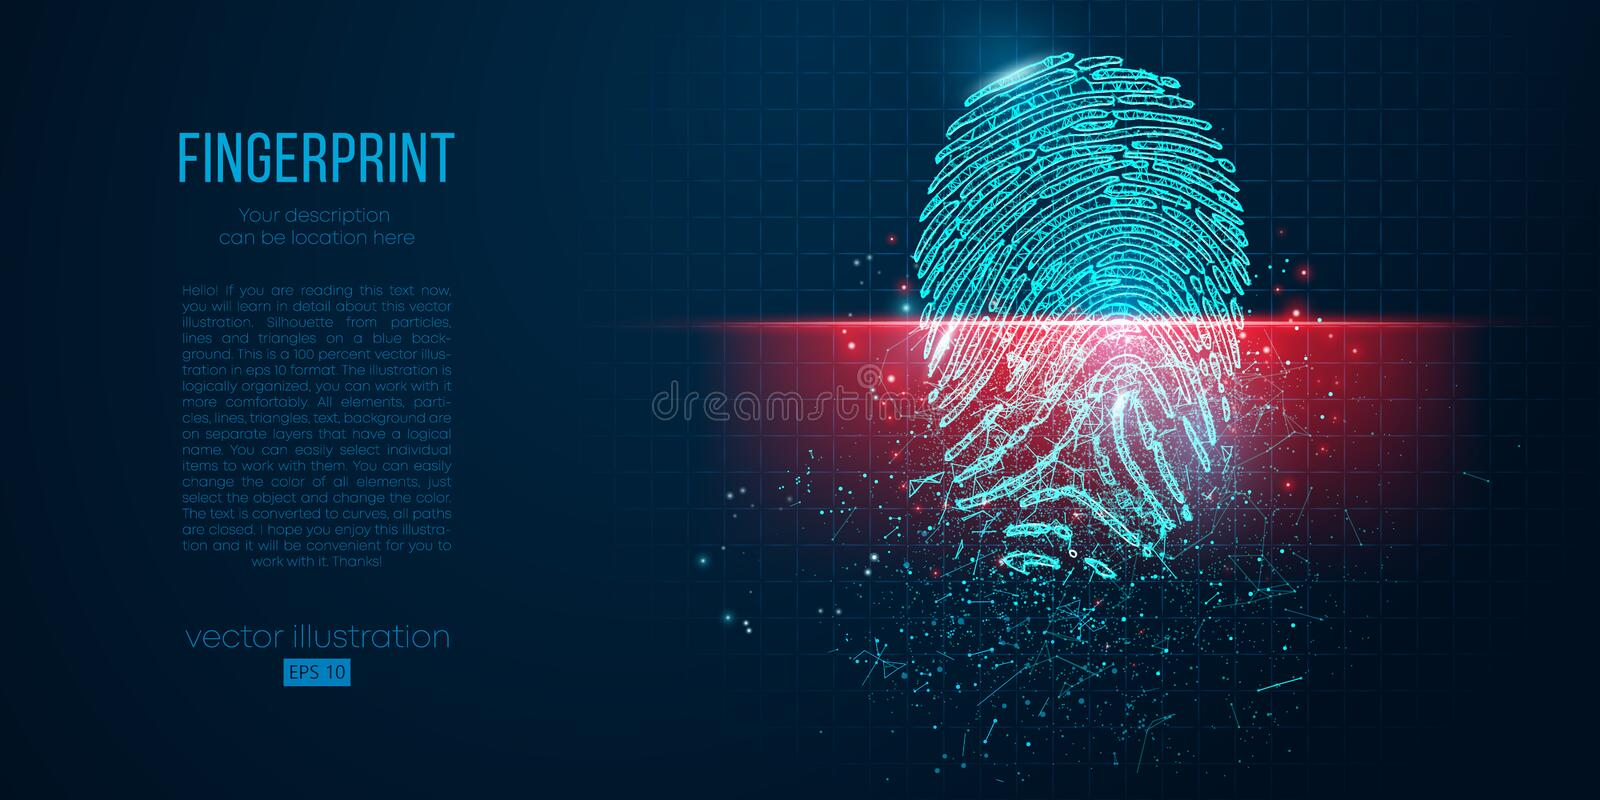 Concept of digital security, electronic fingerprint on scanning screen. Low poly wire outline geometric vector. Illustration. Particles, lines and triangles on vector illustration